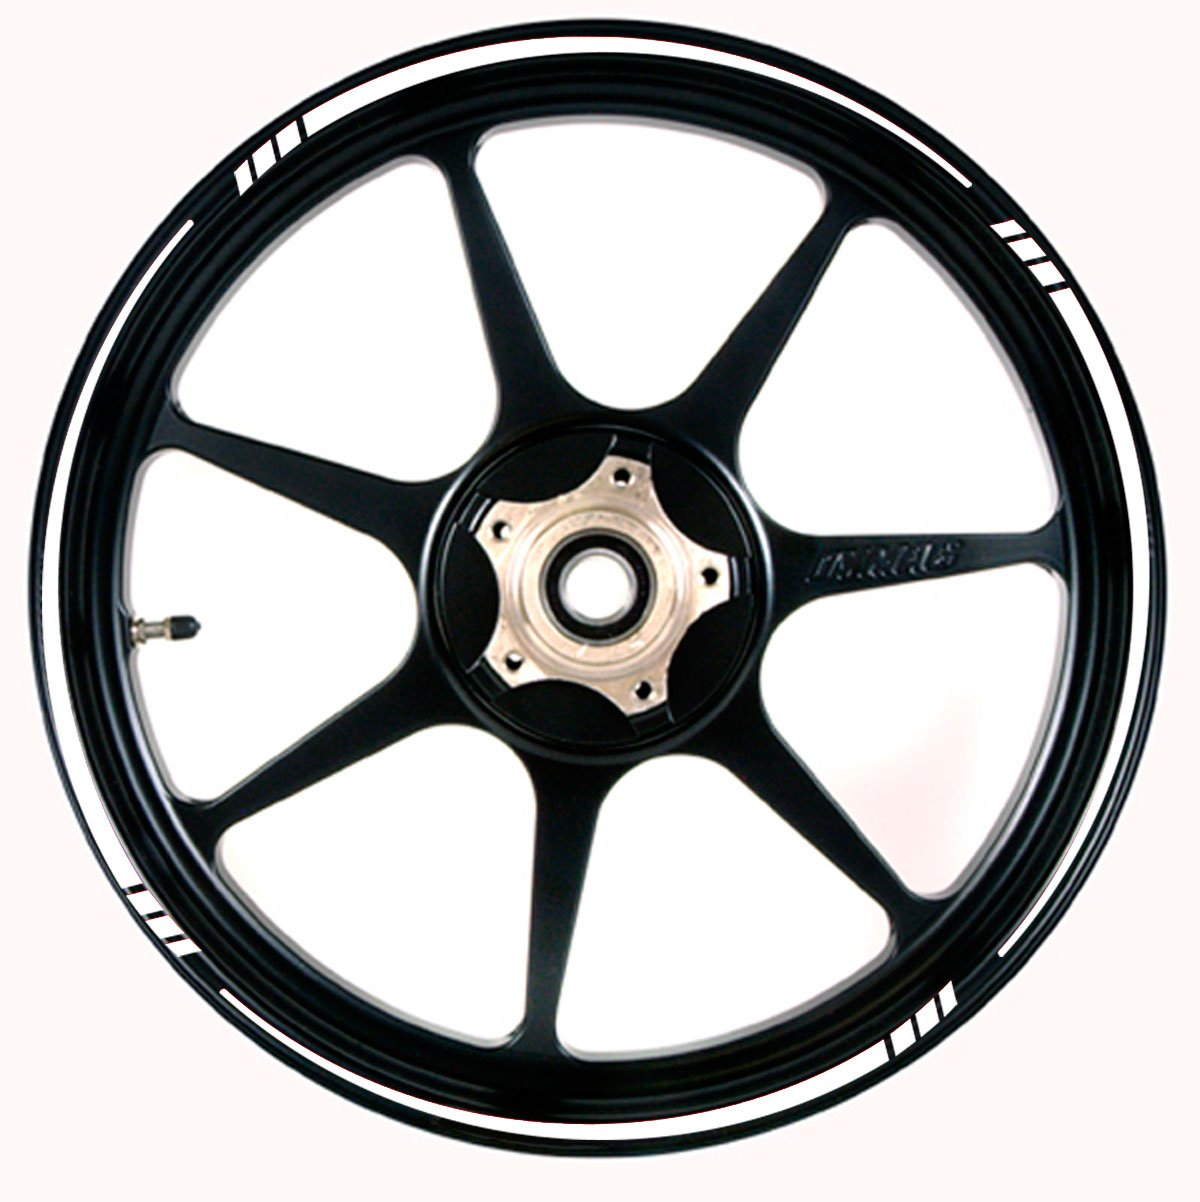 WHITE Wheel Rim Tape TAPERED Stripe fit ALL Makes of Motorcycles, Cars, Trucks